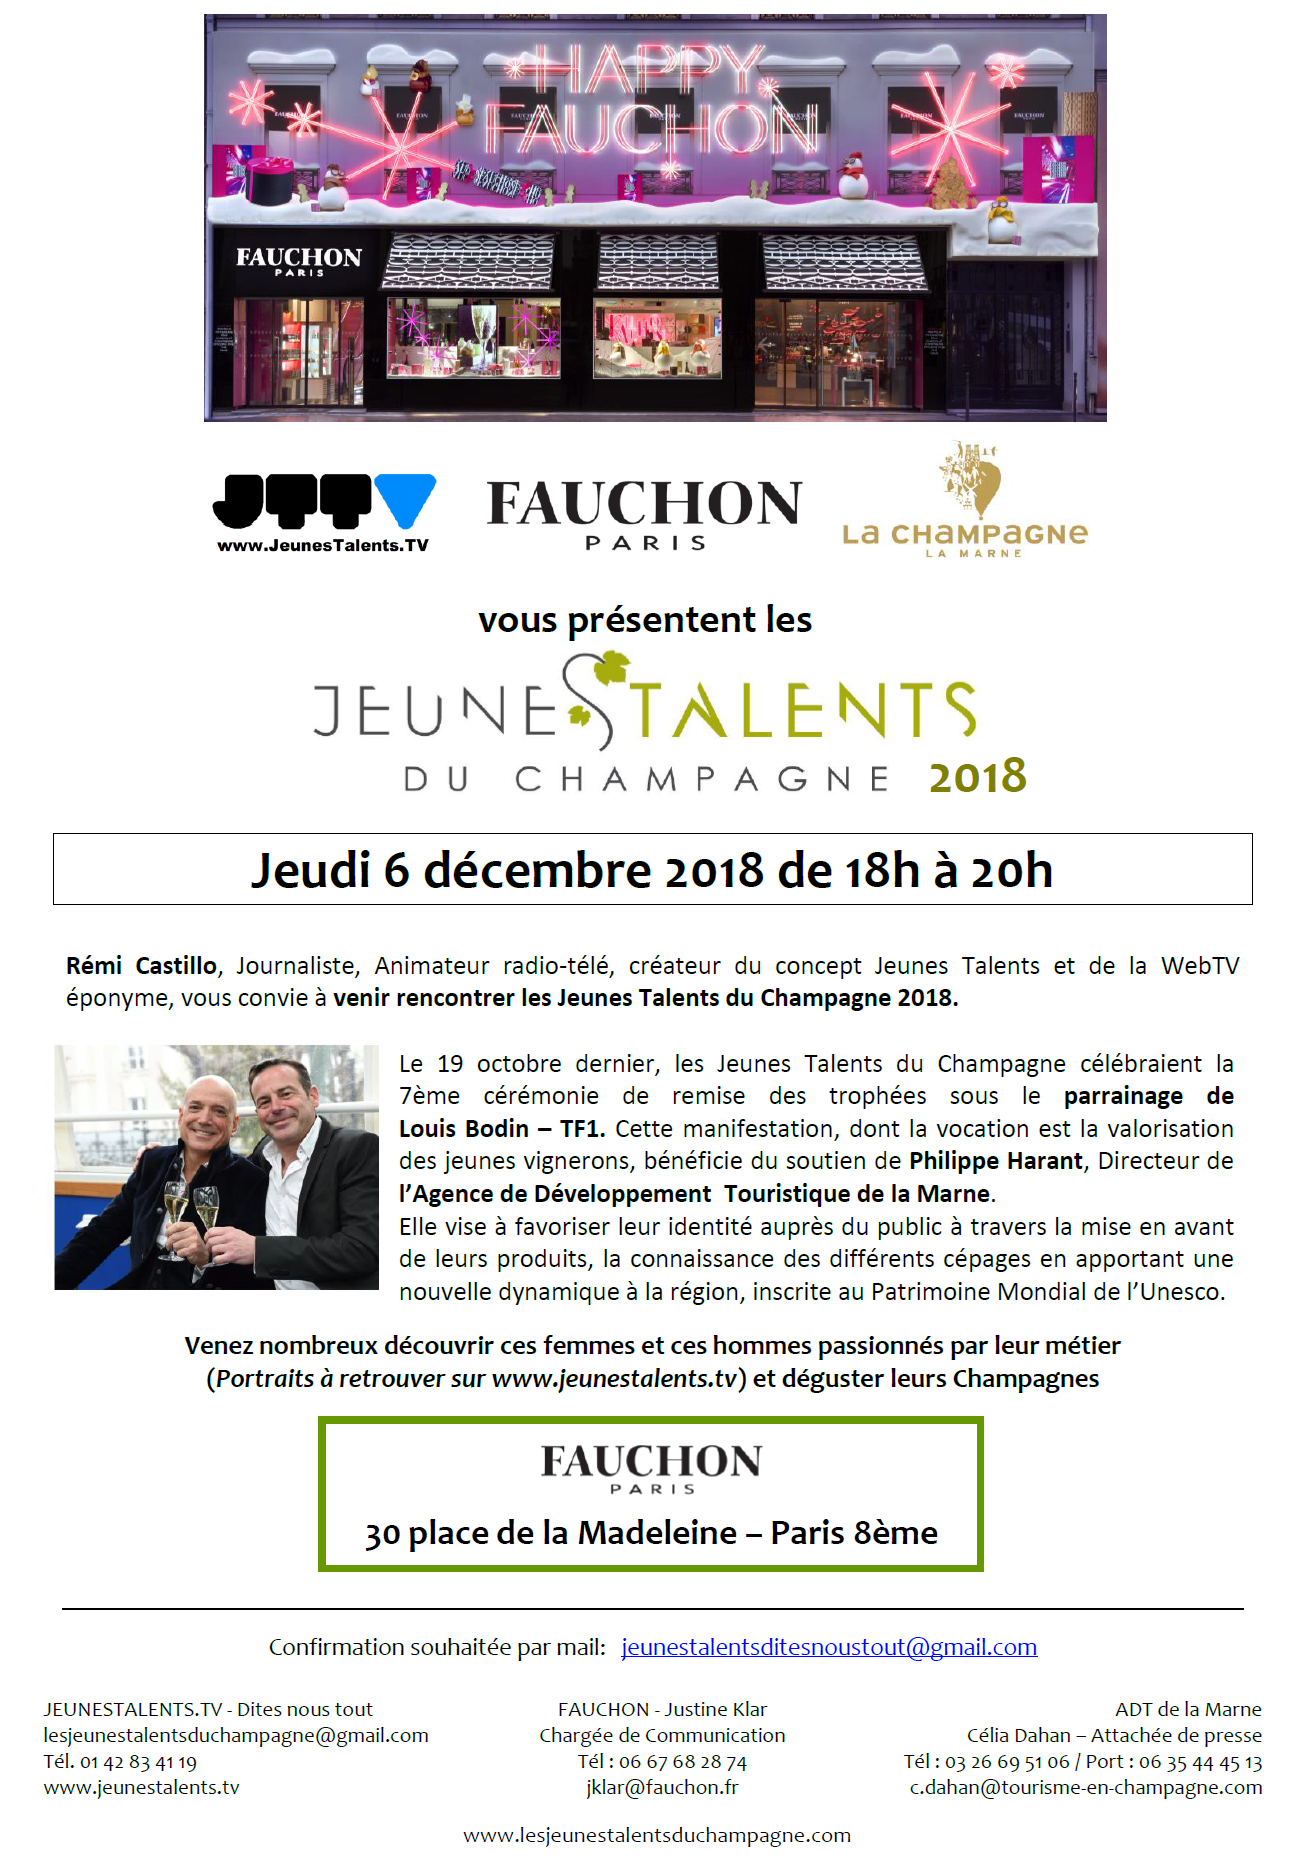 INVITATION RENCONTRE JT CHAMPAGNE 6 DEC 2018 FAUCHON